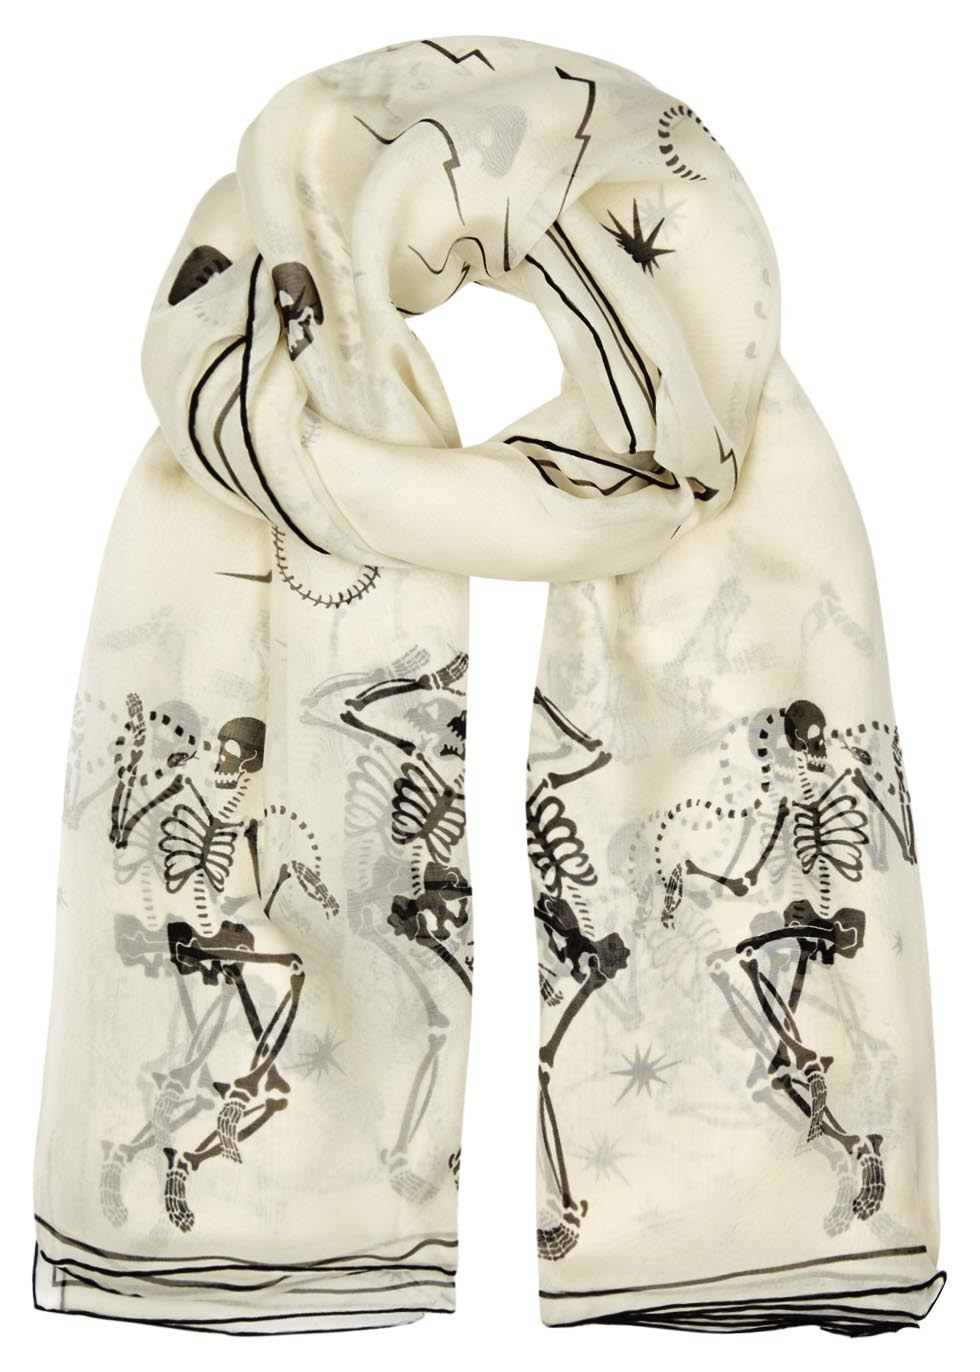 Funny Bones Printed Silk Chiffon Scarf - predominant colour: ivory/cream; secondary colour: black; occasions: casual; type of pattern: heavy; style: regular; size: standard; material: silk; pattern: patterned/print; season: s/s 2016